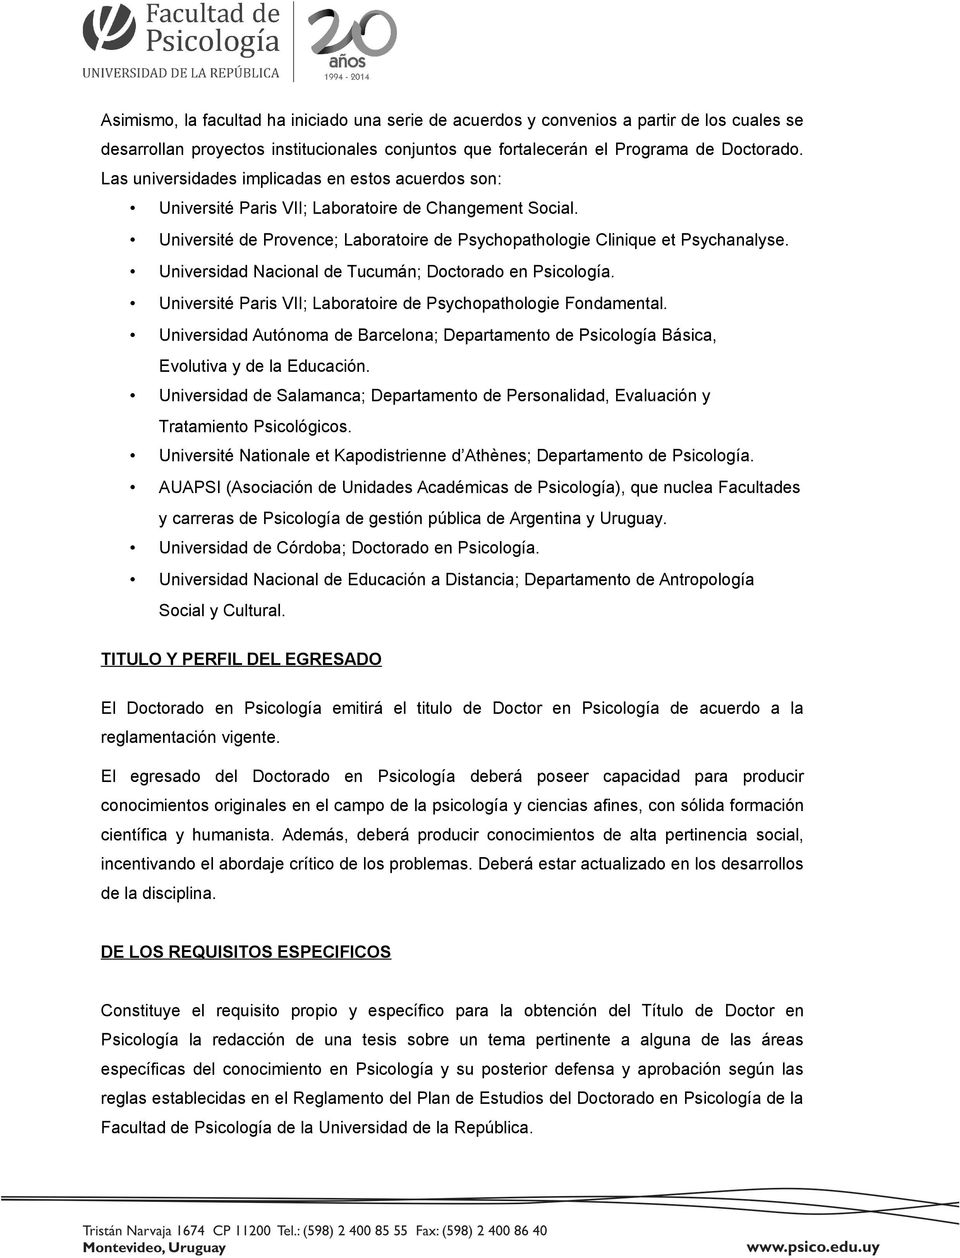 Universidad Nacional de Tucumán; Doctorado en Psicología. Université Paris VII; Laboratoire de Psychopathologie Fondamental.